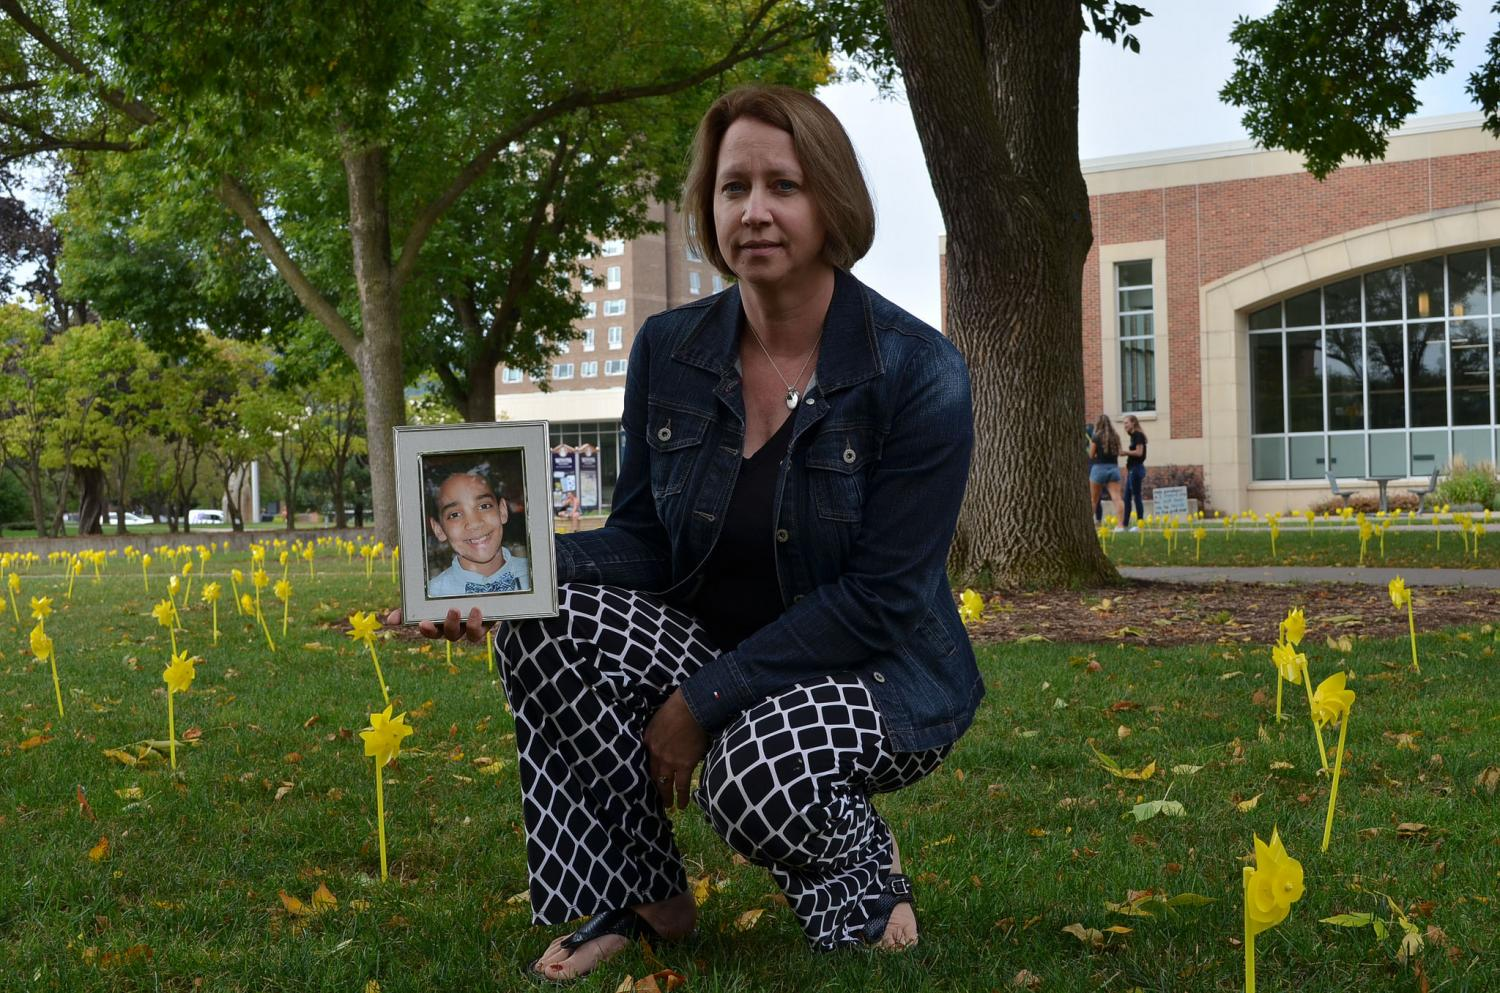 Winona State librarian Carol Daul-Elhindi and her husband founded Solomon's Song in her youngest son's honor after he took his life in 2016. Solomon's Song works to promote a healthy mind and body, celebrate diversity and work to stomp out the stigma surrounding mental illness. The foundation holds several awareness events and provides resources for those who need help.